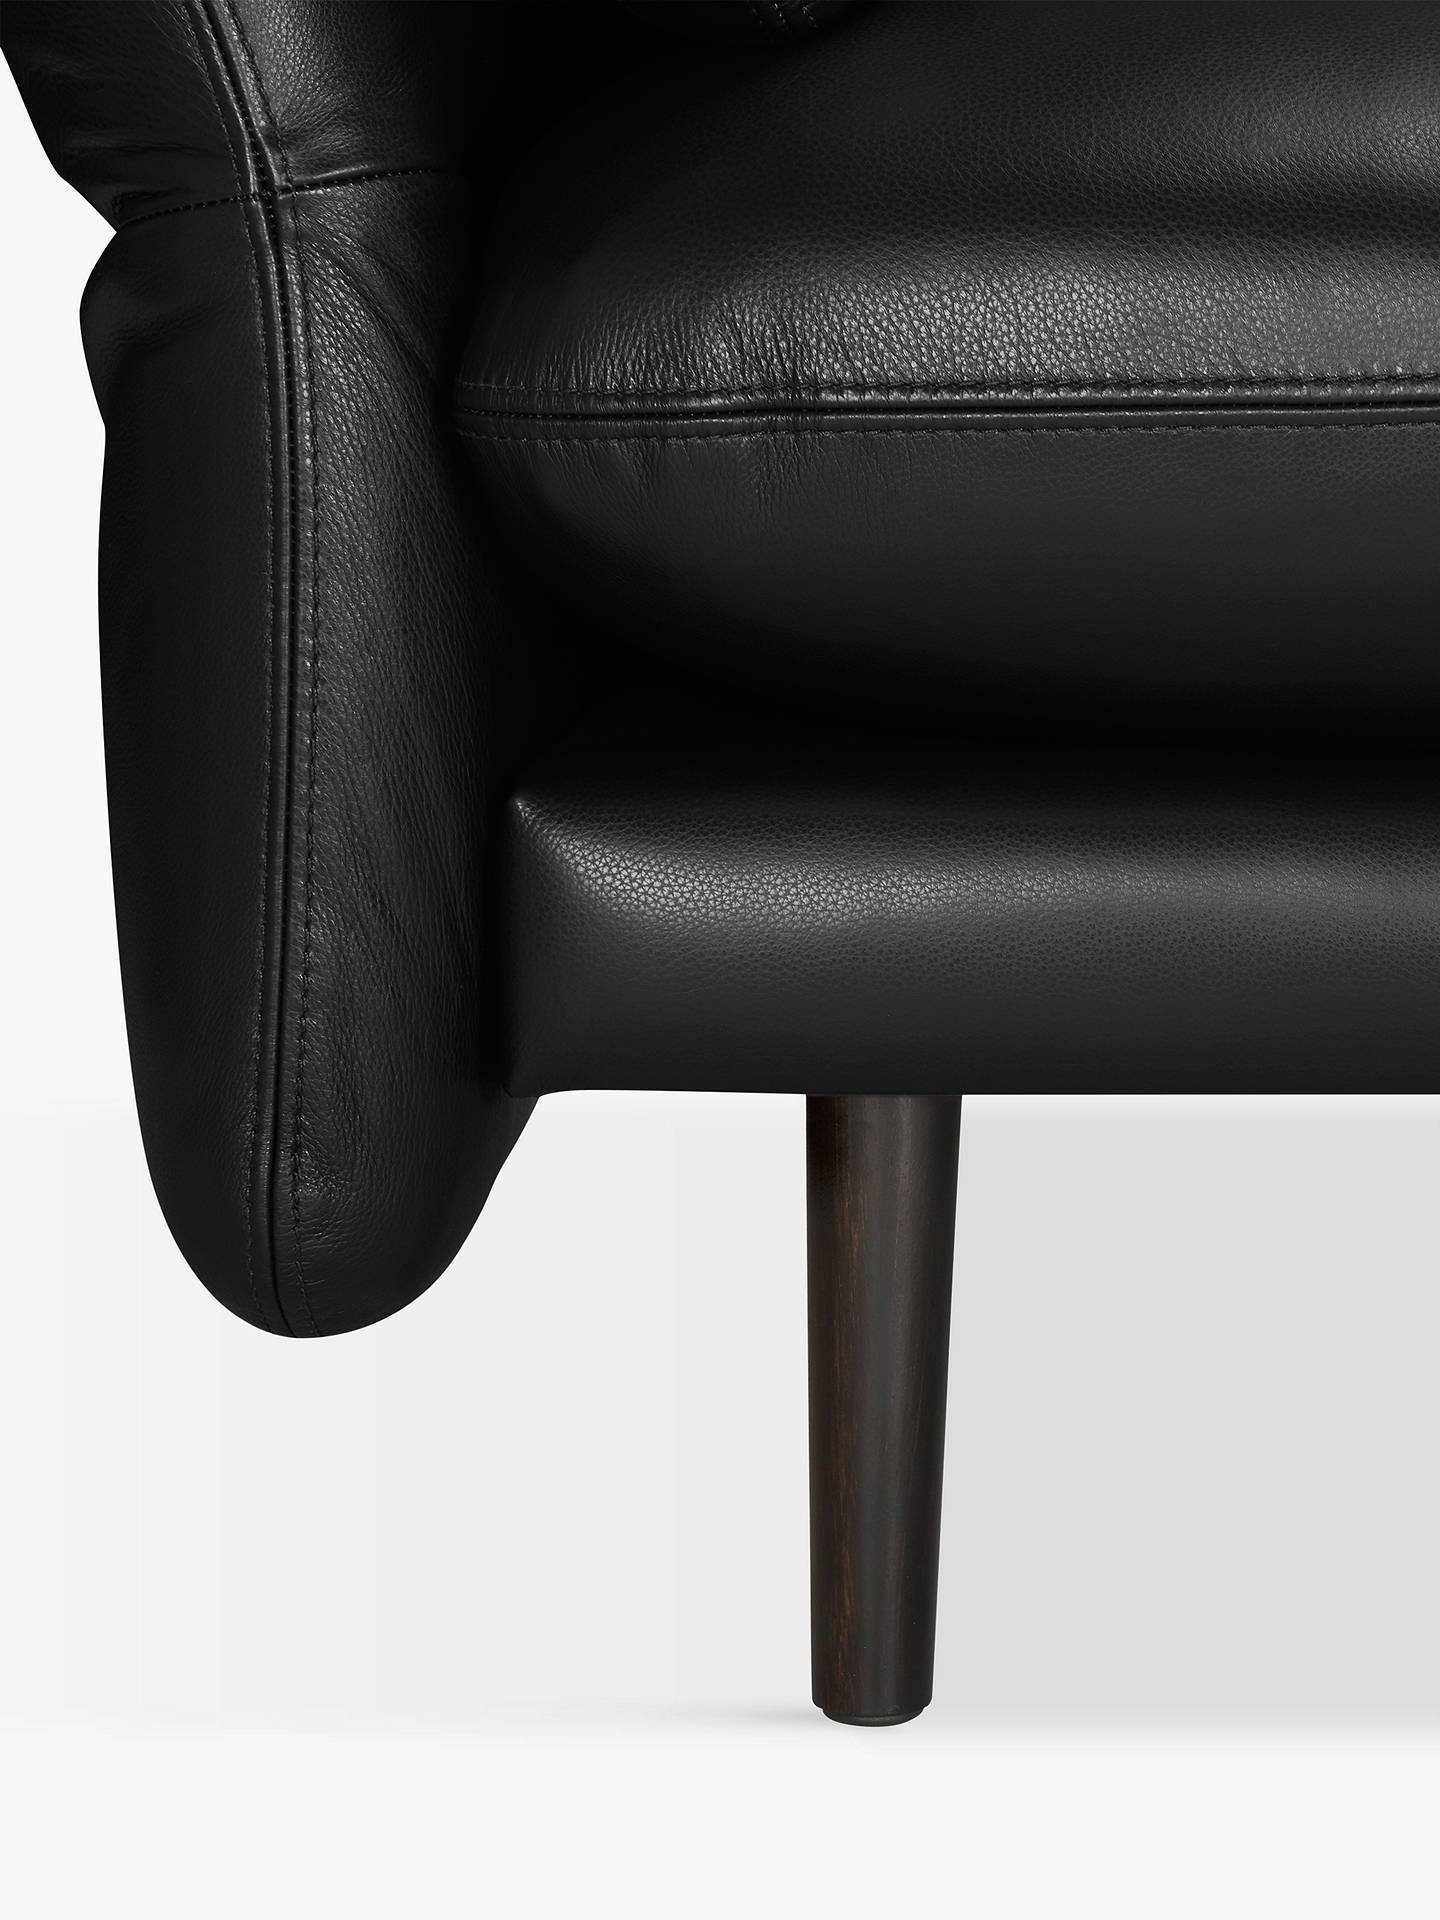 BuyDesign Project by John Lewis No.142 Leather Medium 2 Seater Sofa, Dark Leg, Contempo Black Online at johnlewis.com